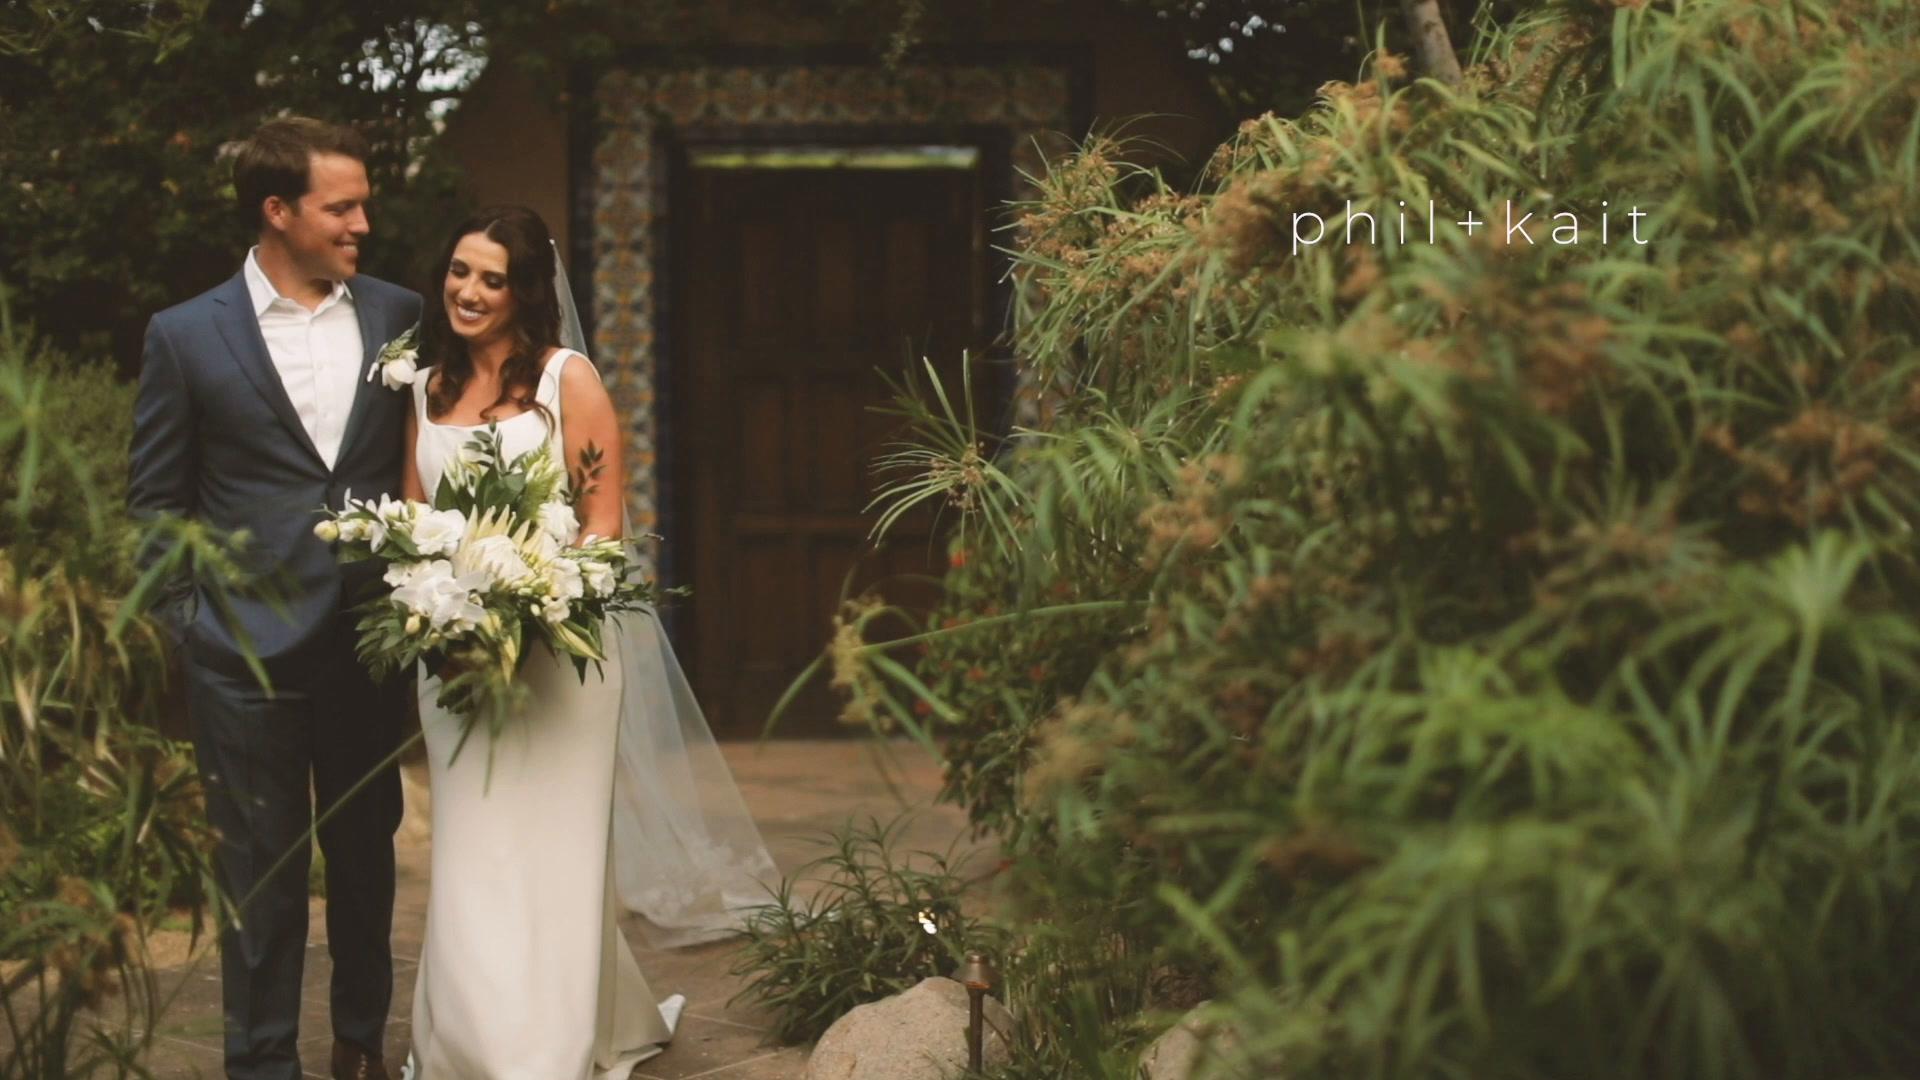 Philip + Kaitlyn | Phoenix, Arizona | a house